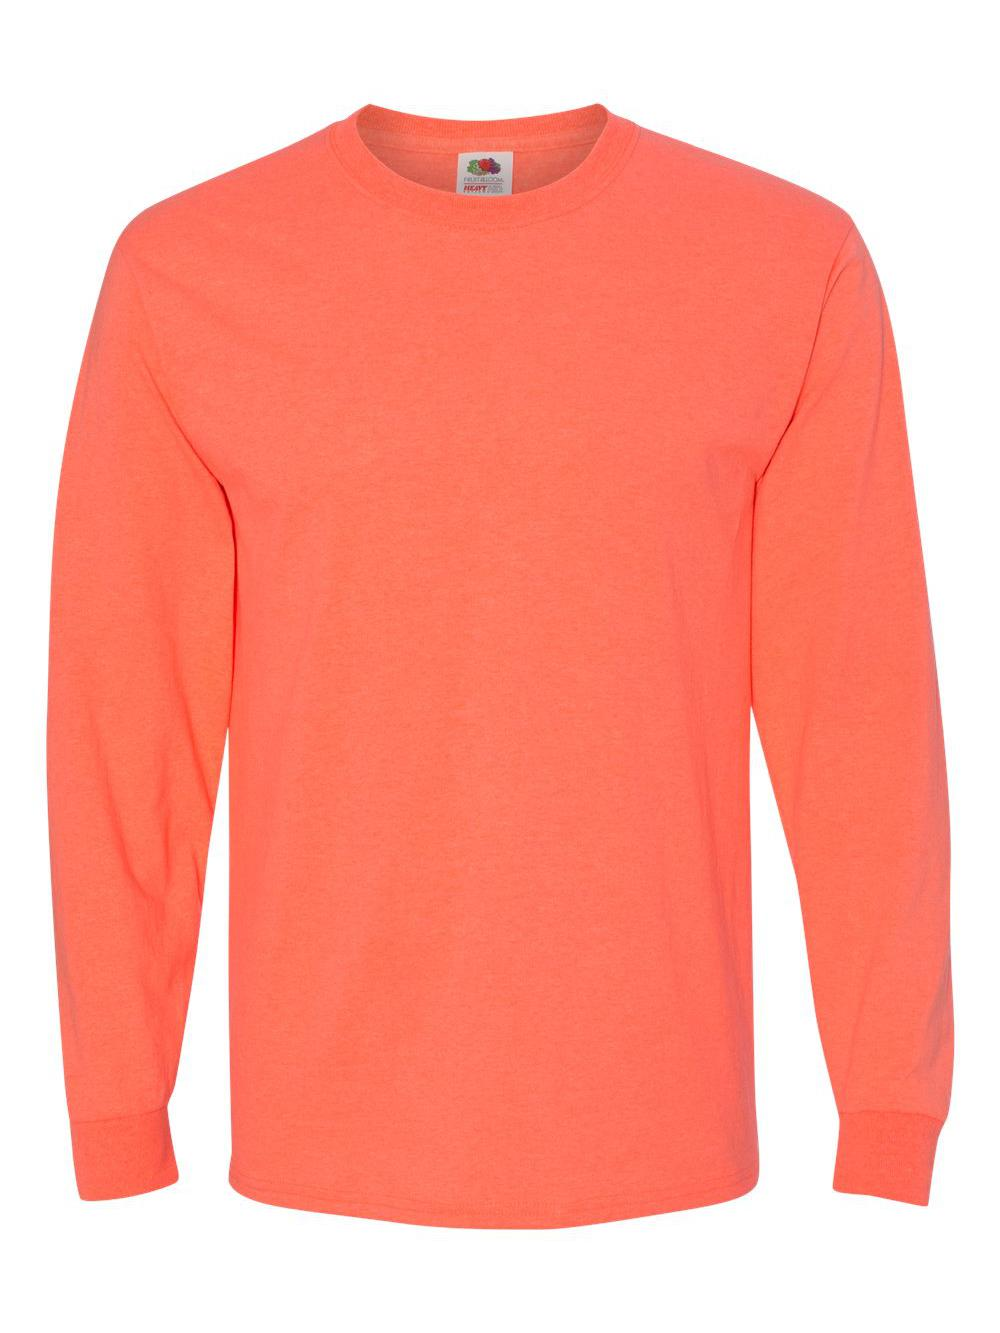 Fruit-of-the-Loom-HD-Cotton-Long-Sleeve-T-Shirt-4930R thumbnail 60